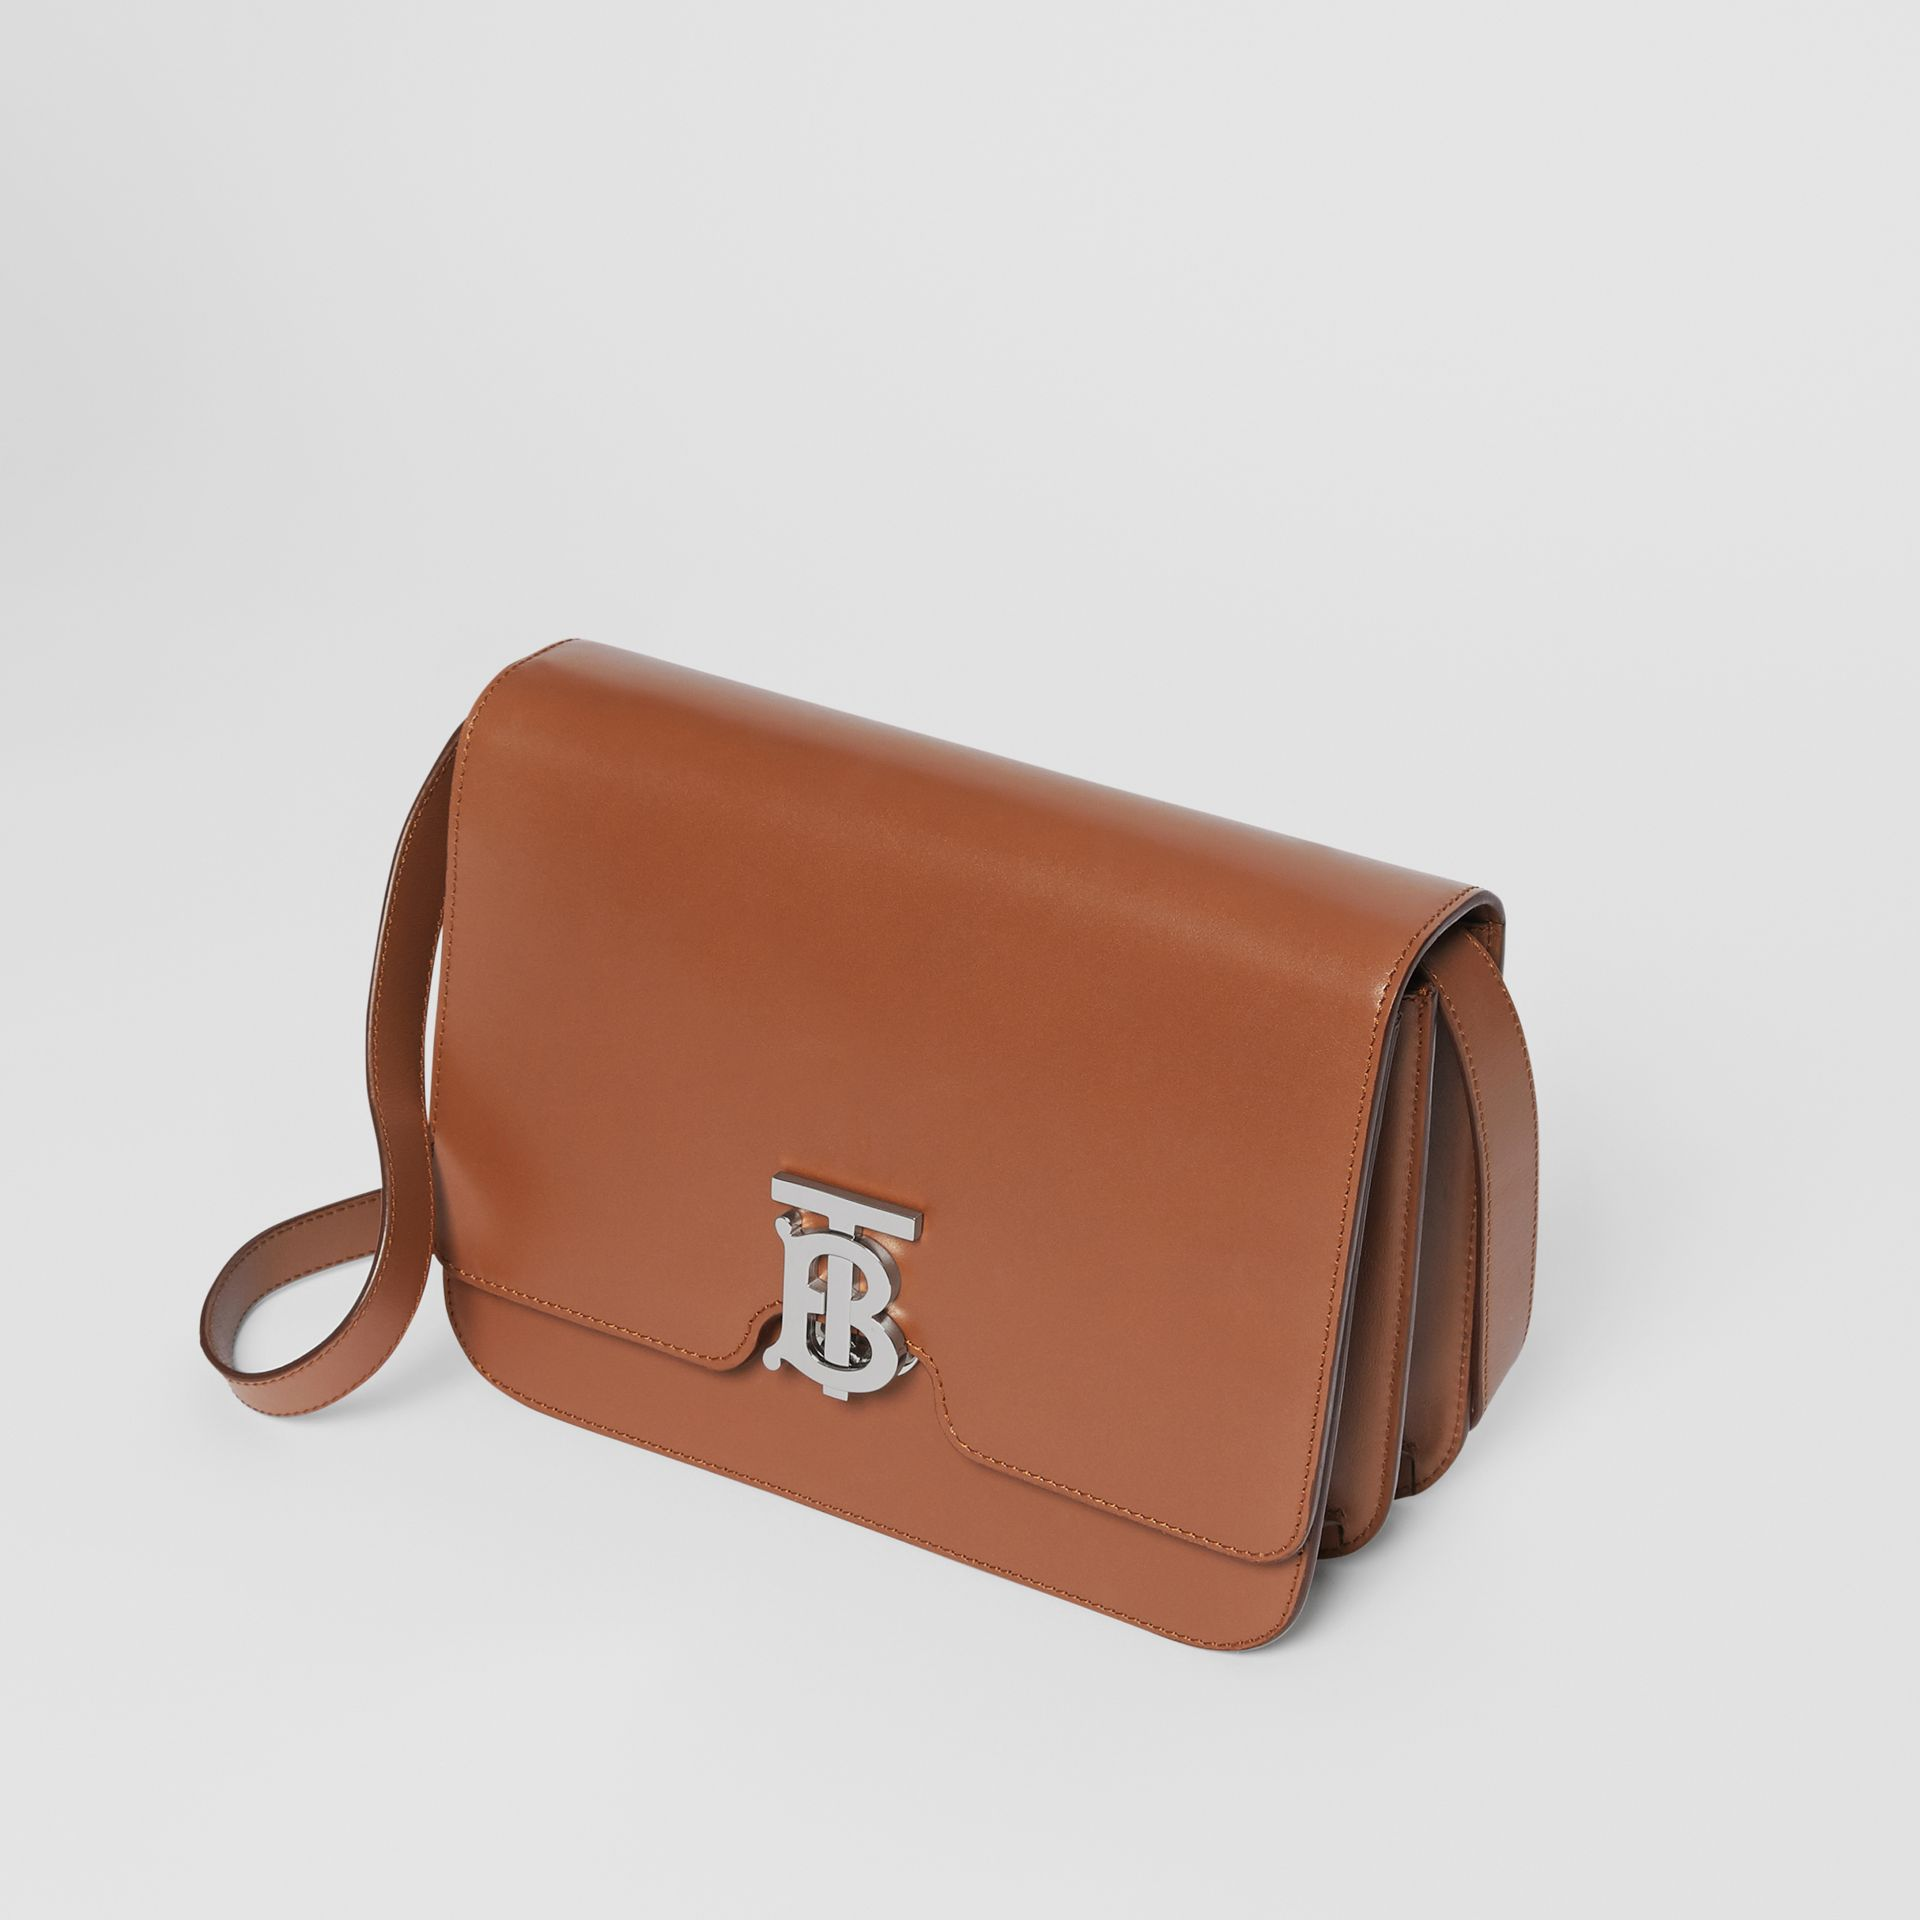 Medium Leather TB Bag in Malt Brown - Women | Burberry Australia - gallery image 3